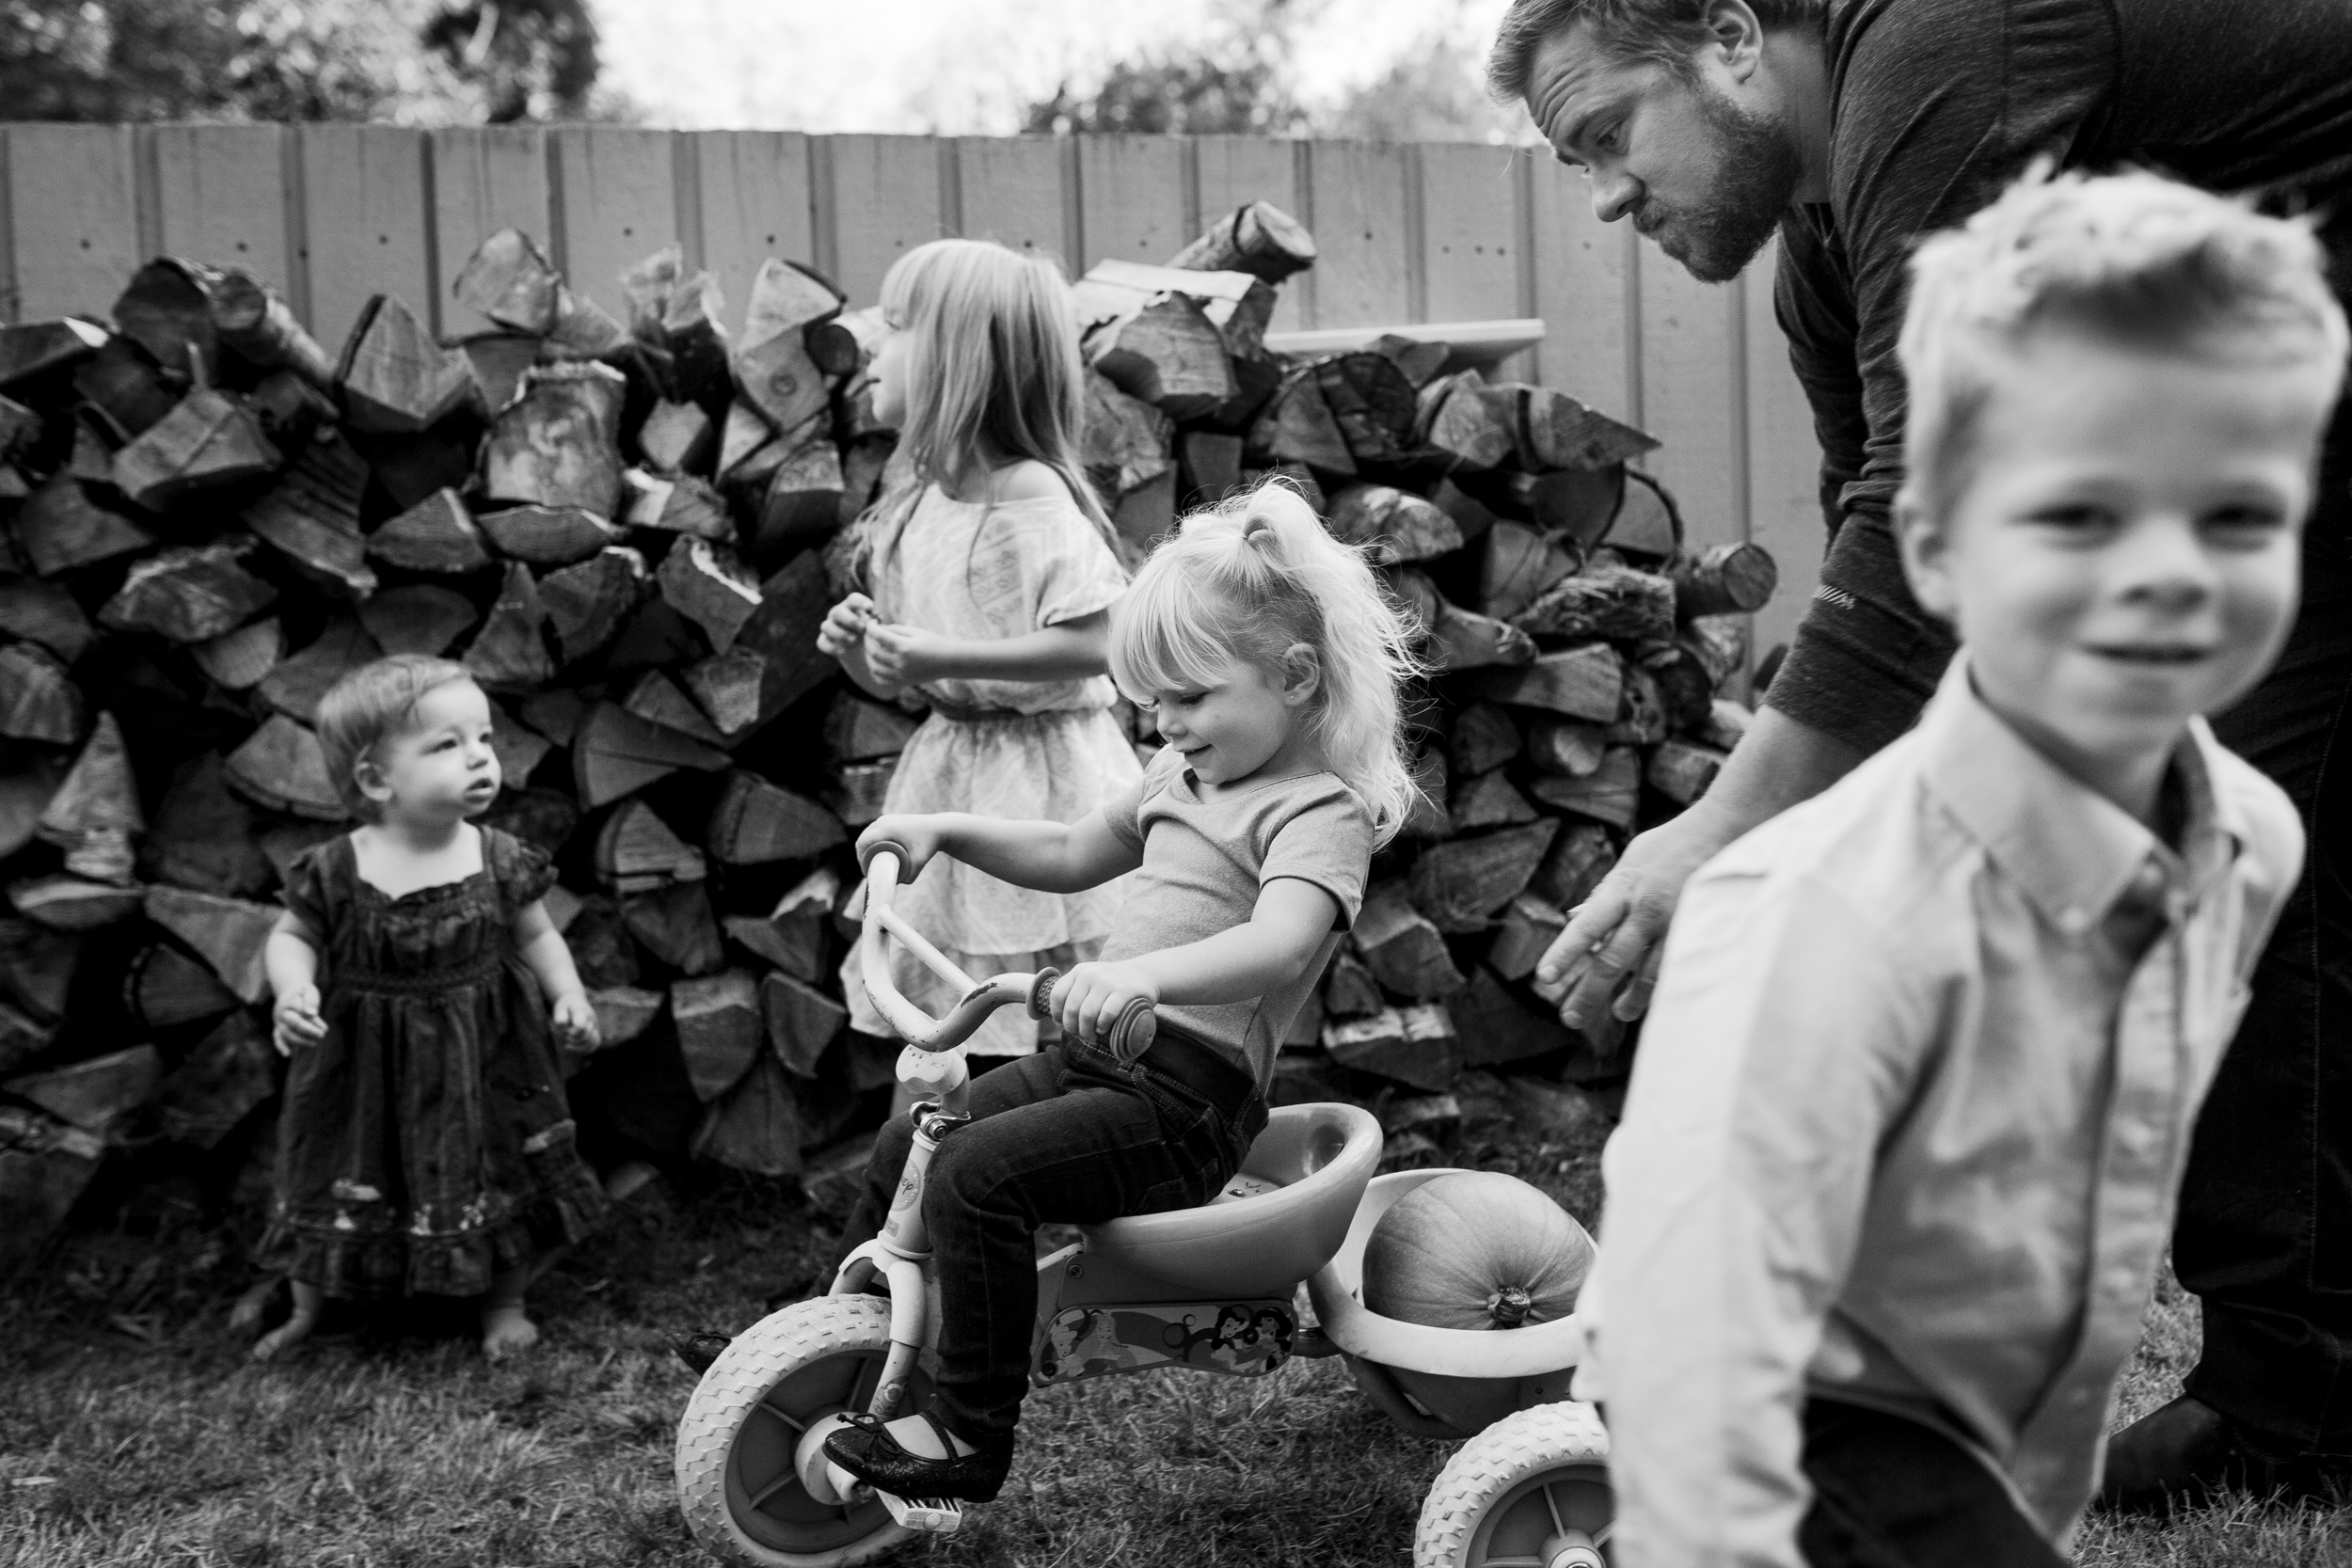 family in the busyiness of four kids together playing